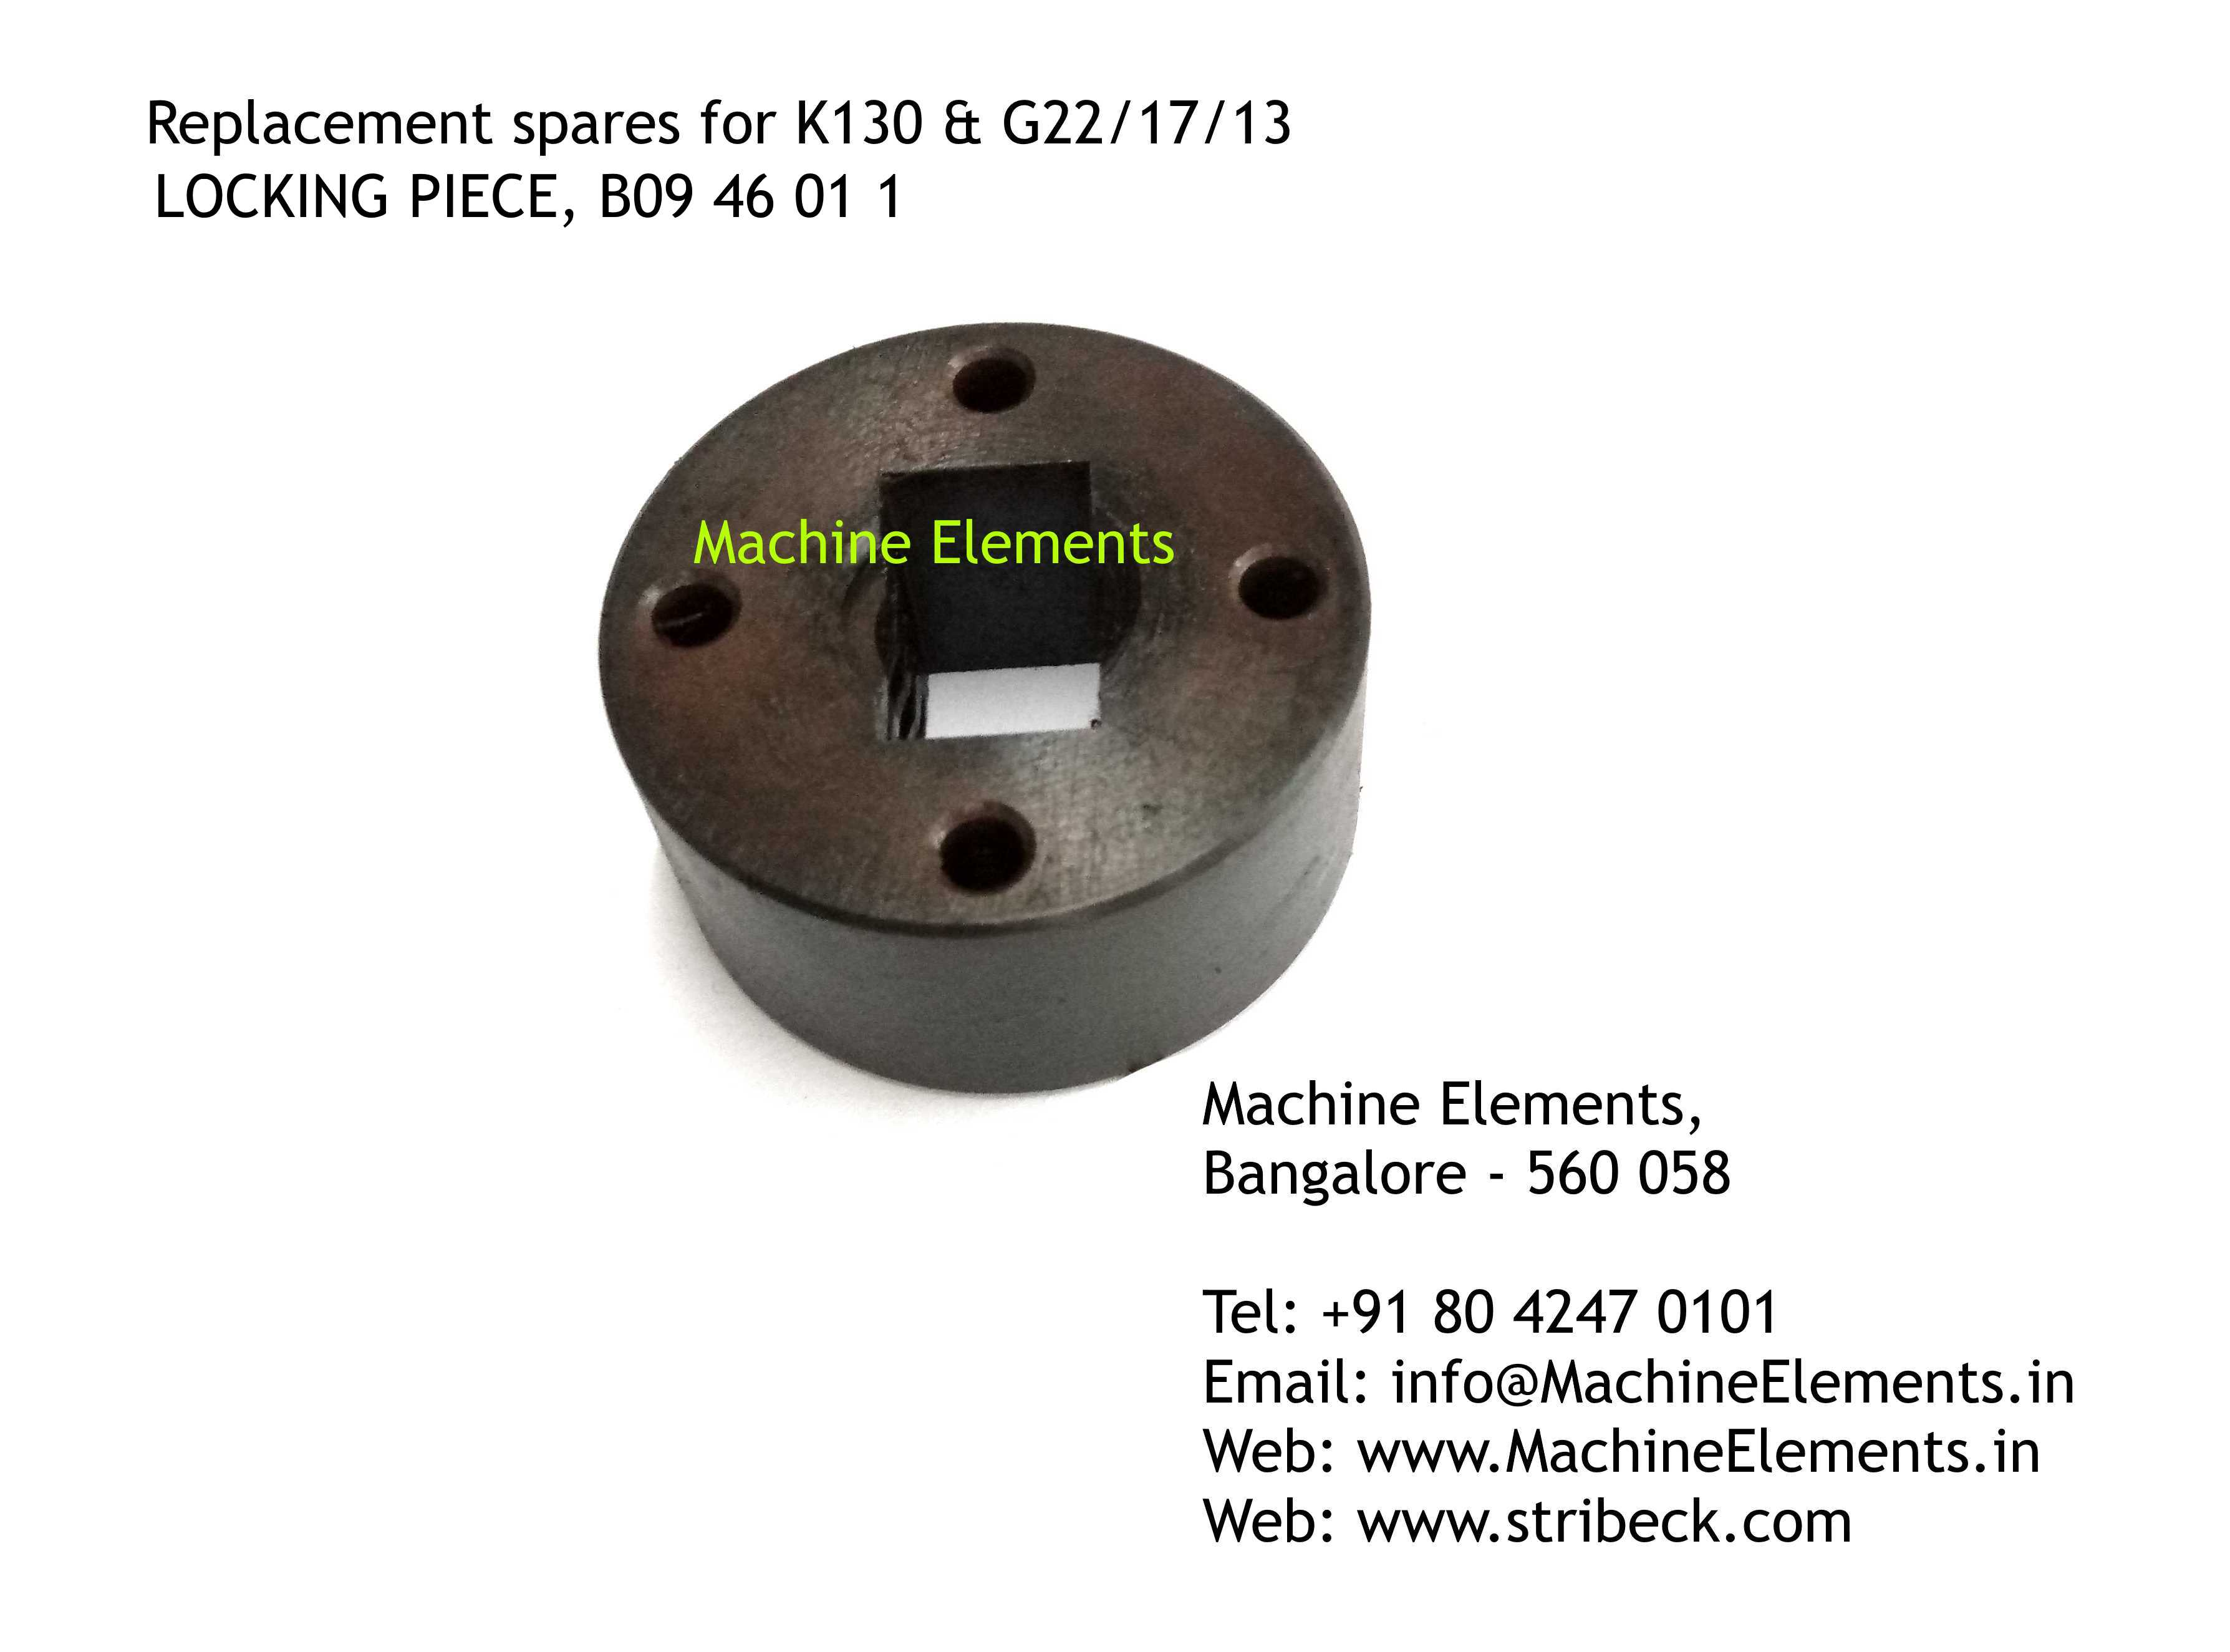 B9046011 LOCKING PIECE